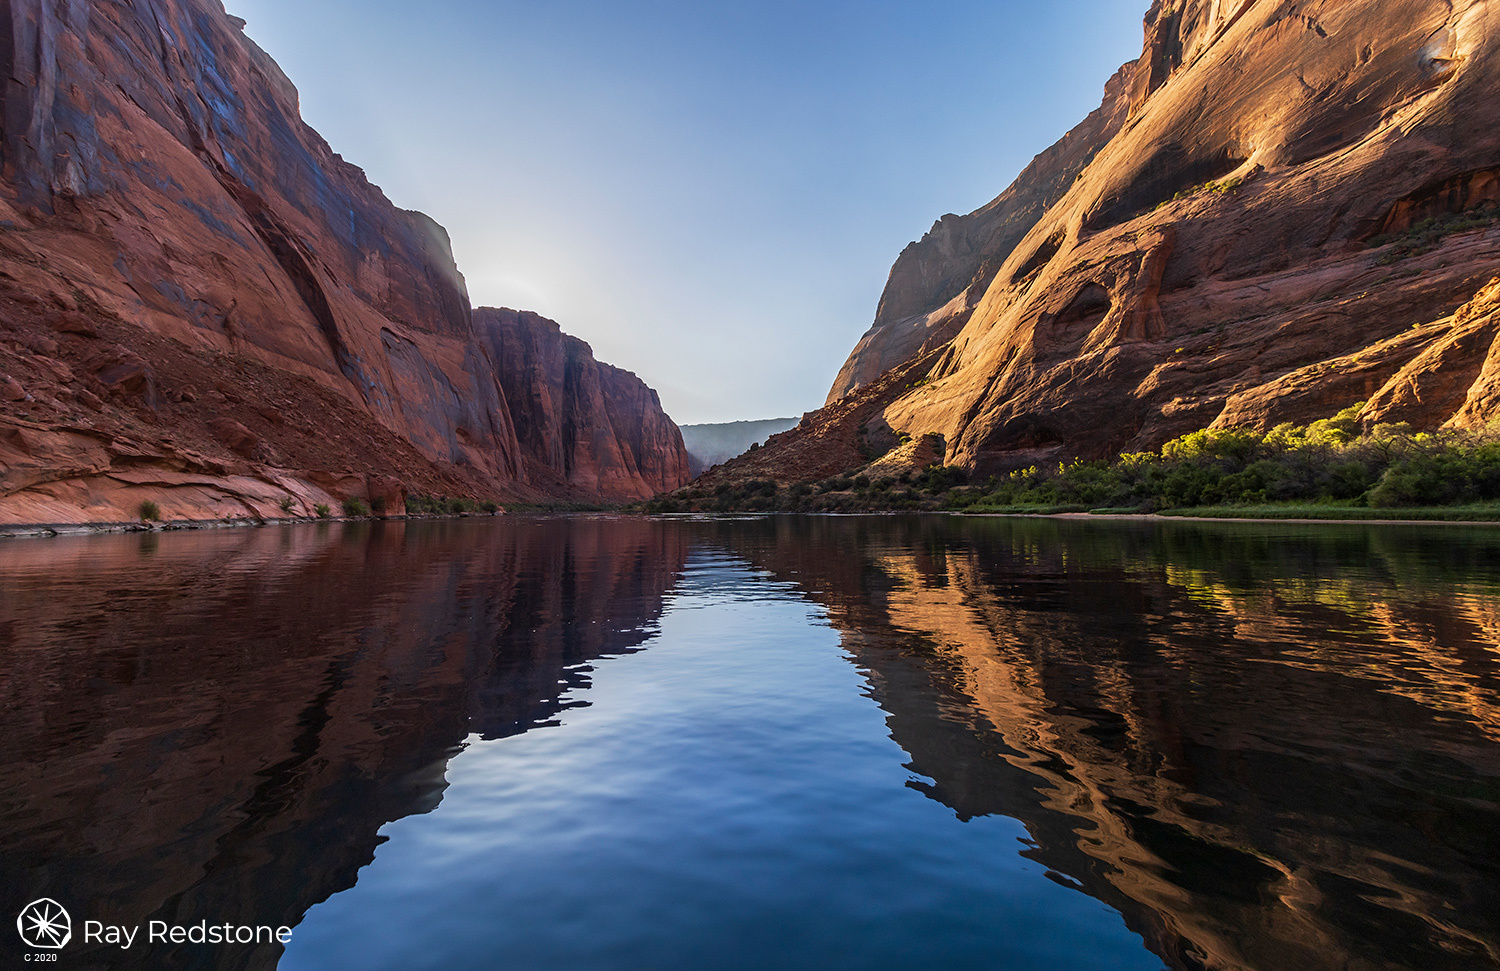 Canyon Wall Reflection on Colorado River by Ray Redstone